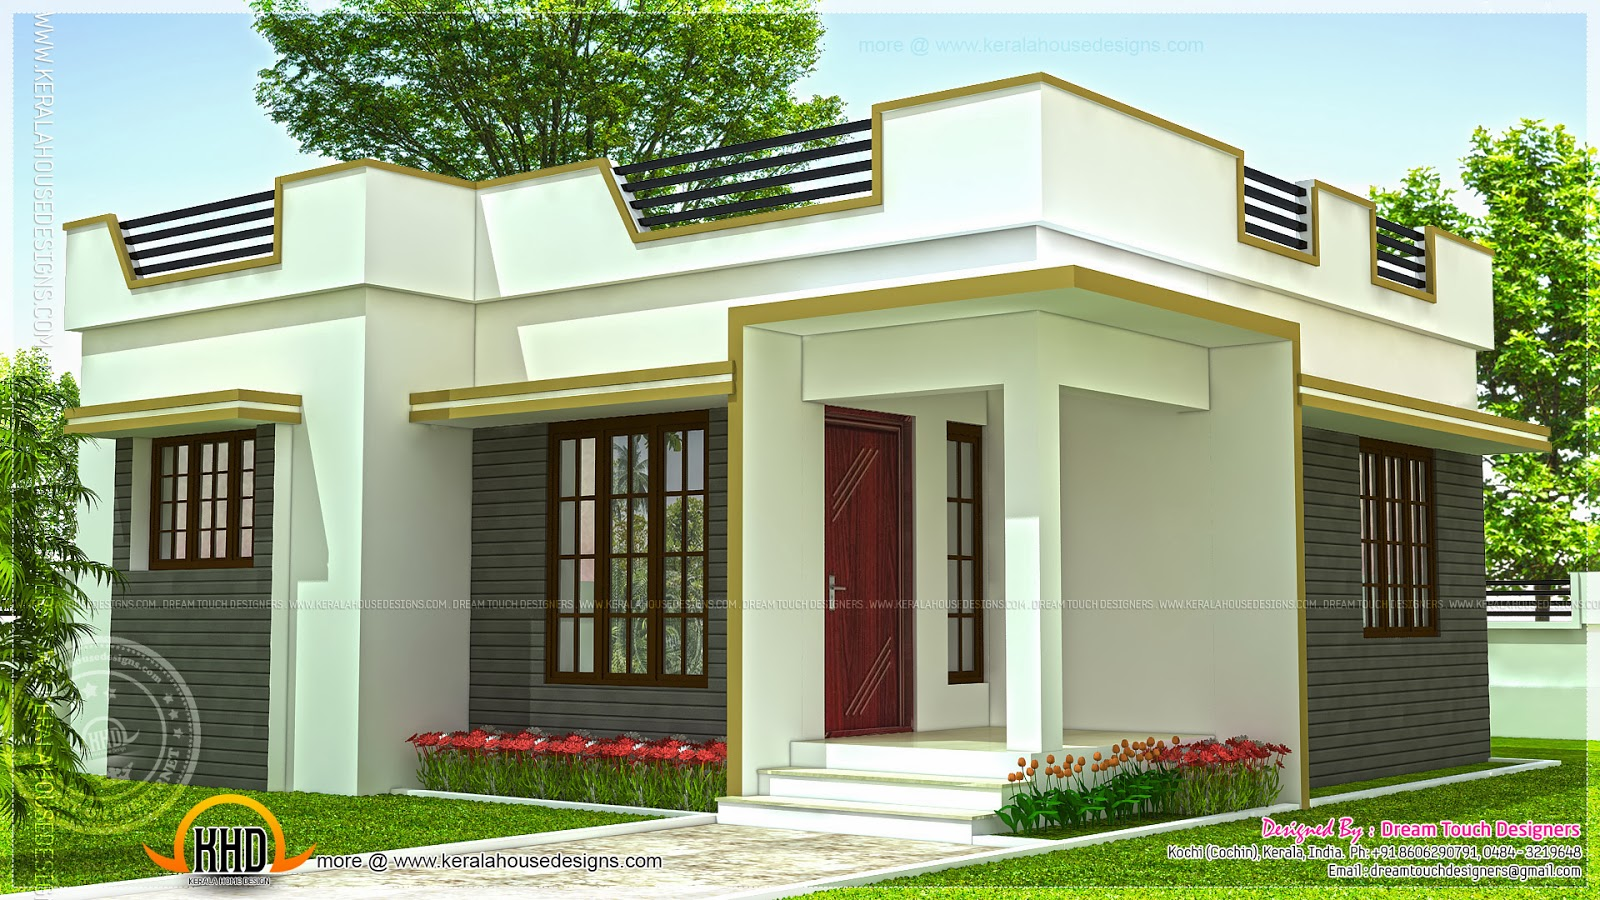 35 small and simple but beautiful house with roof deck - Small house simple design ...